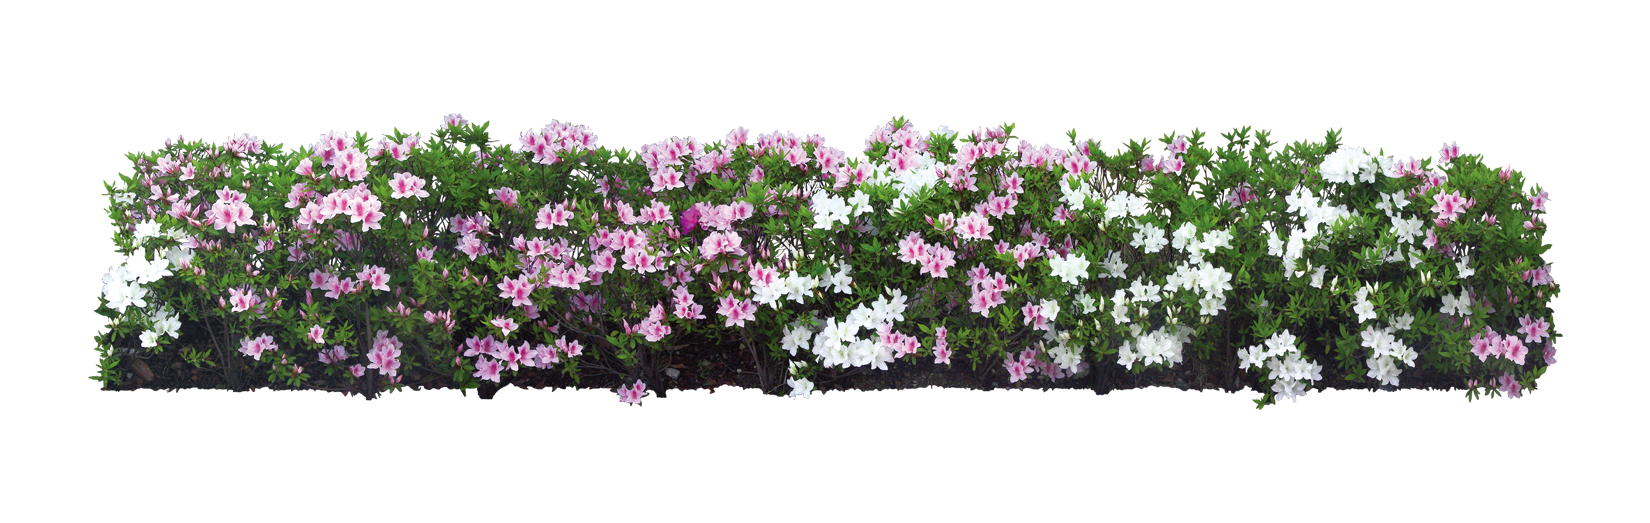 Download Plant Flower Shrub Tree White Garden HQ PNG Image in.